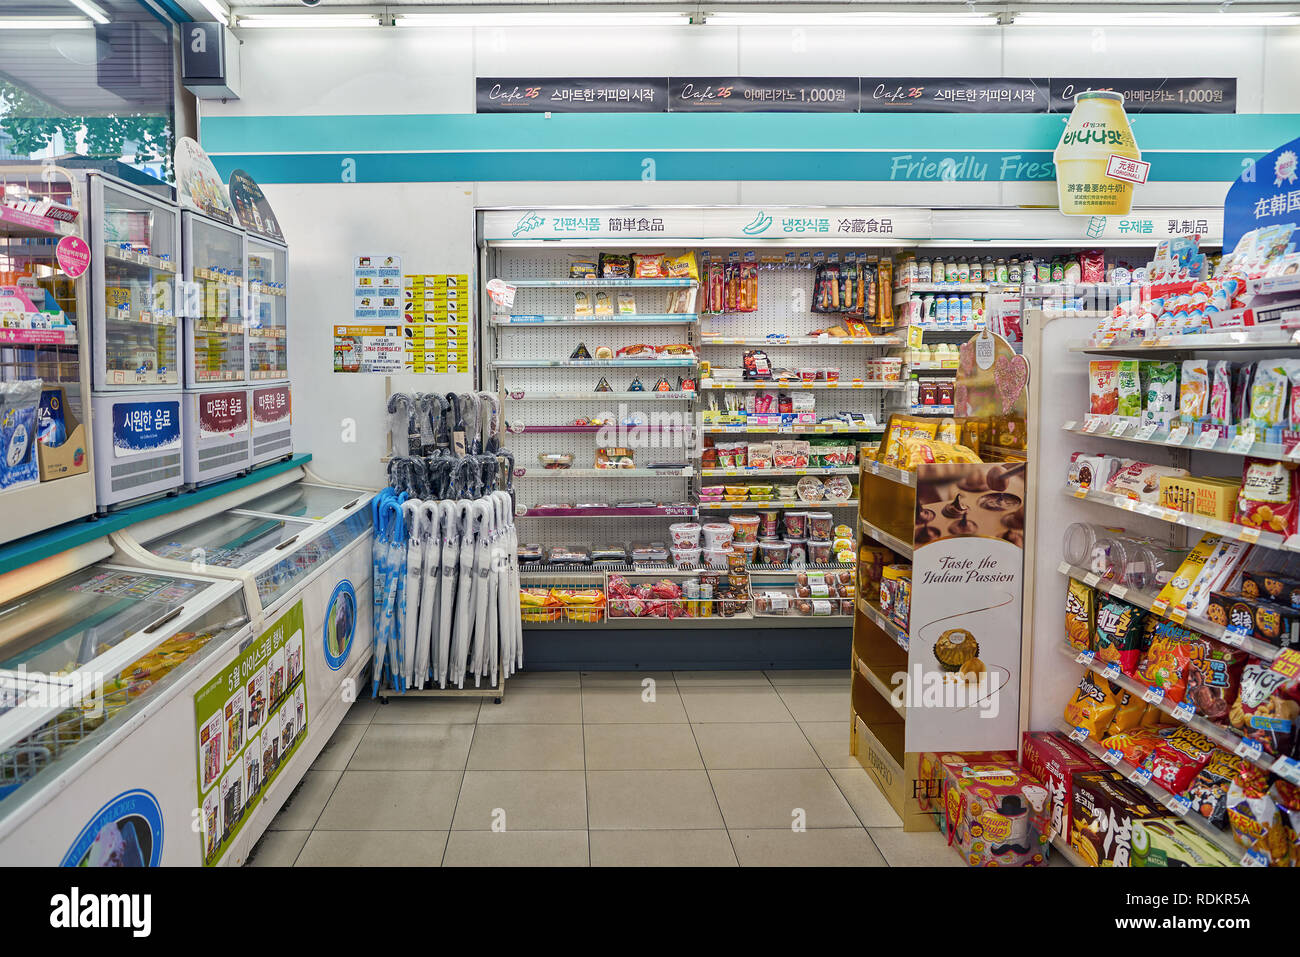 SEOUL, SOUTH KOREA - CIRCA MAY, 2017: inside GS25 convenience store in Seoul. GS25 is a convenience store brand in South Korea. Stock Photo